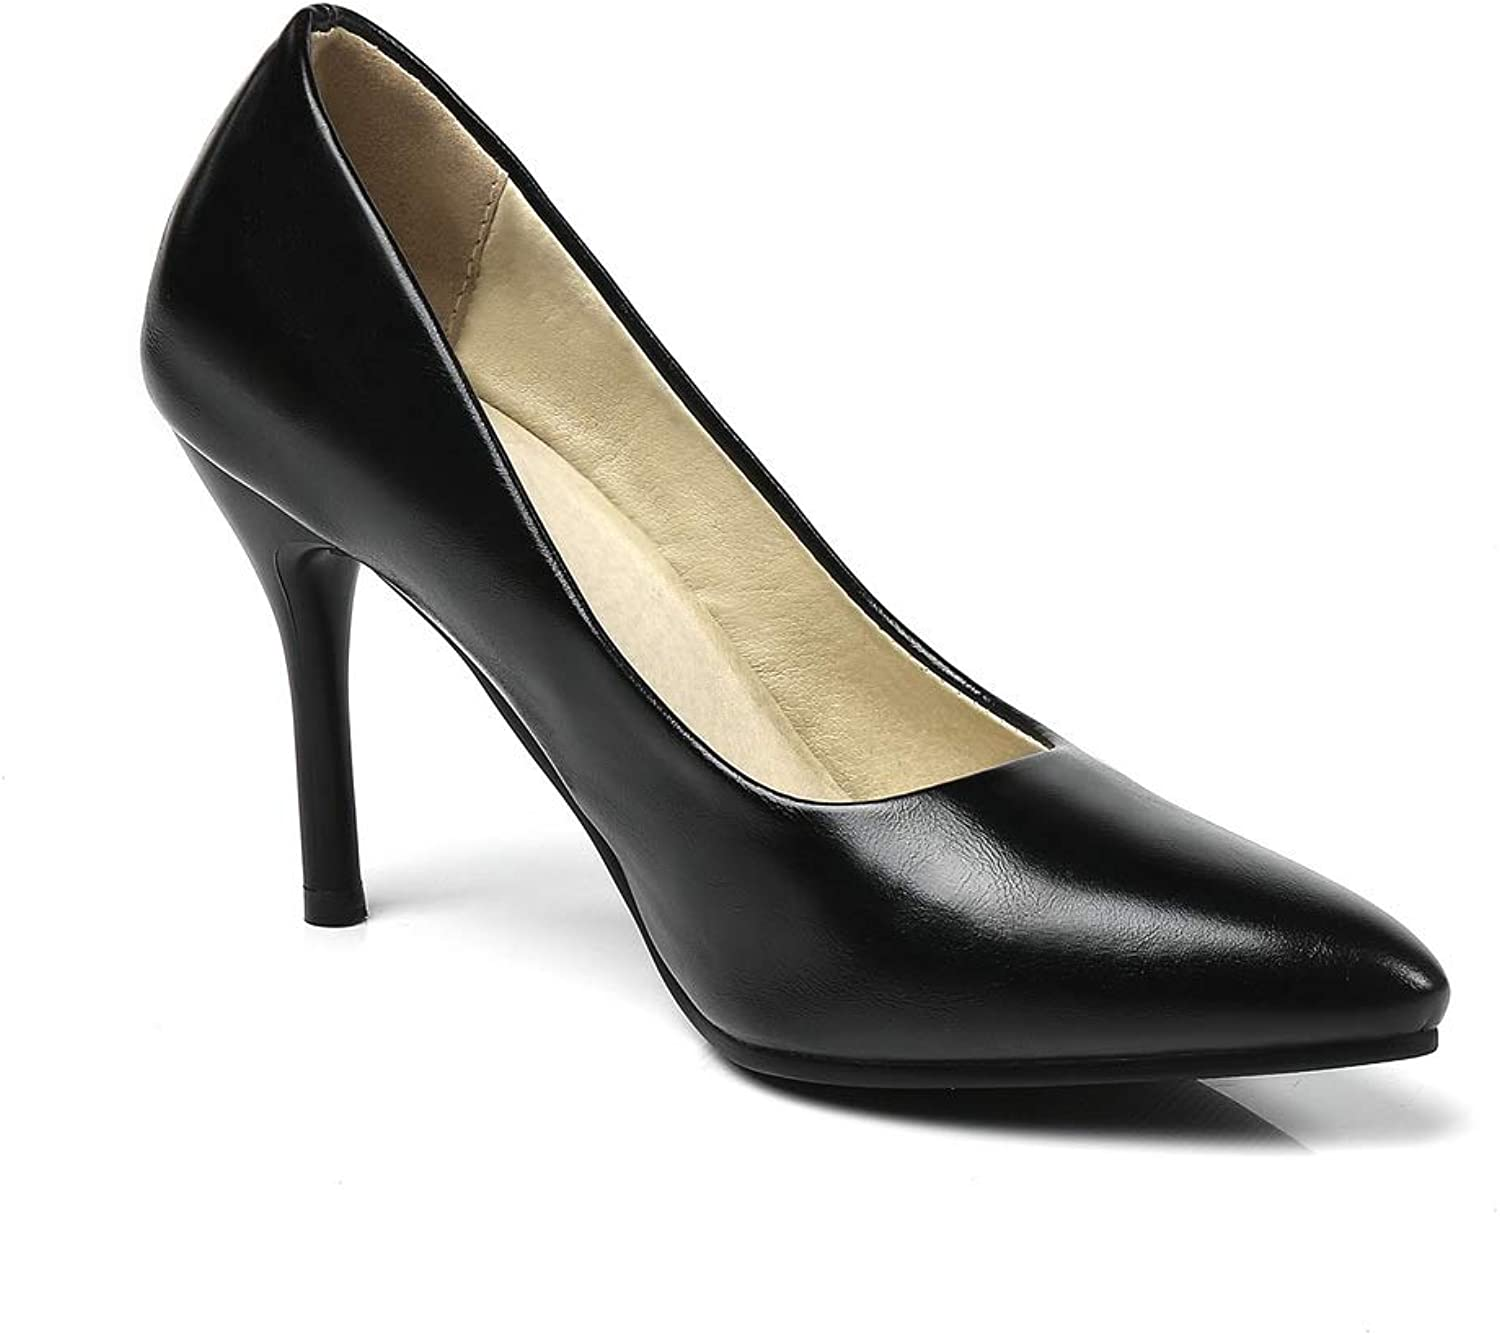 AdeeSu Womens Dance-Ballroom High-Heels Solid Leather Pumps shoes SDC06360